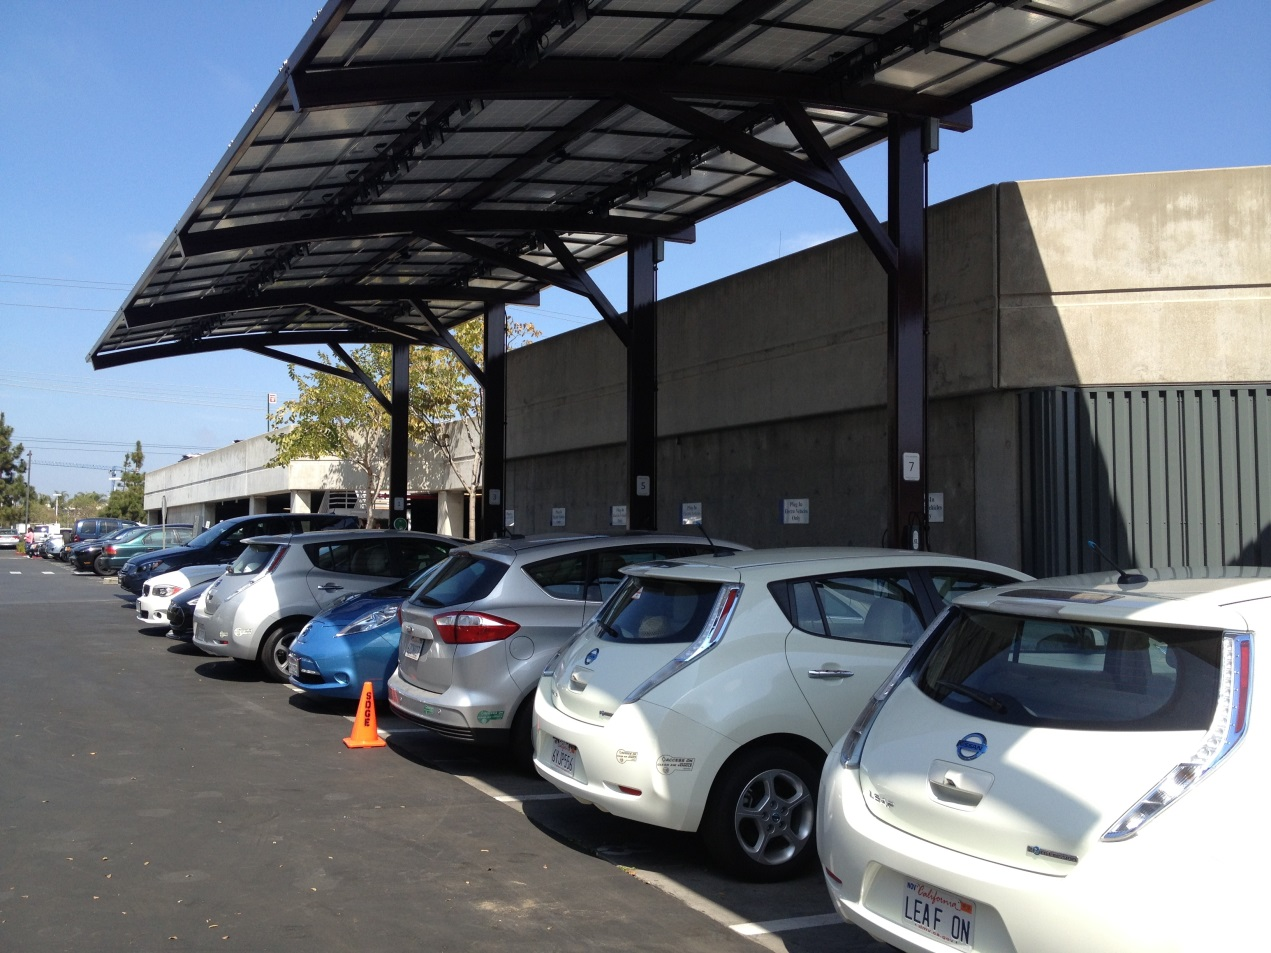 Plug-in electric vehicles (PEVs) parked under a solar canopy with access to electric vehicle supply equipment.